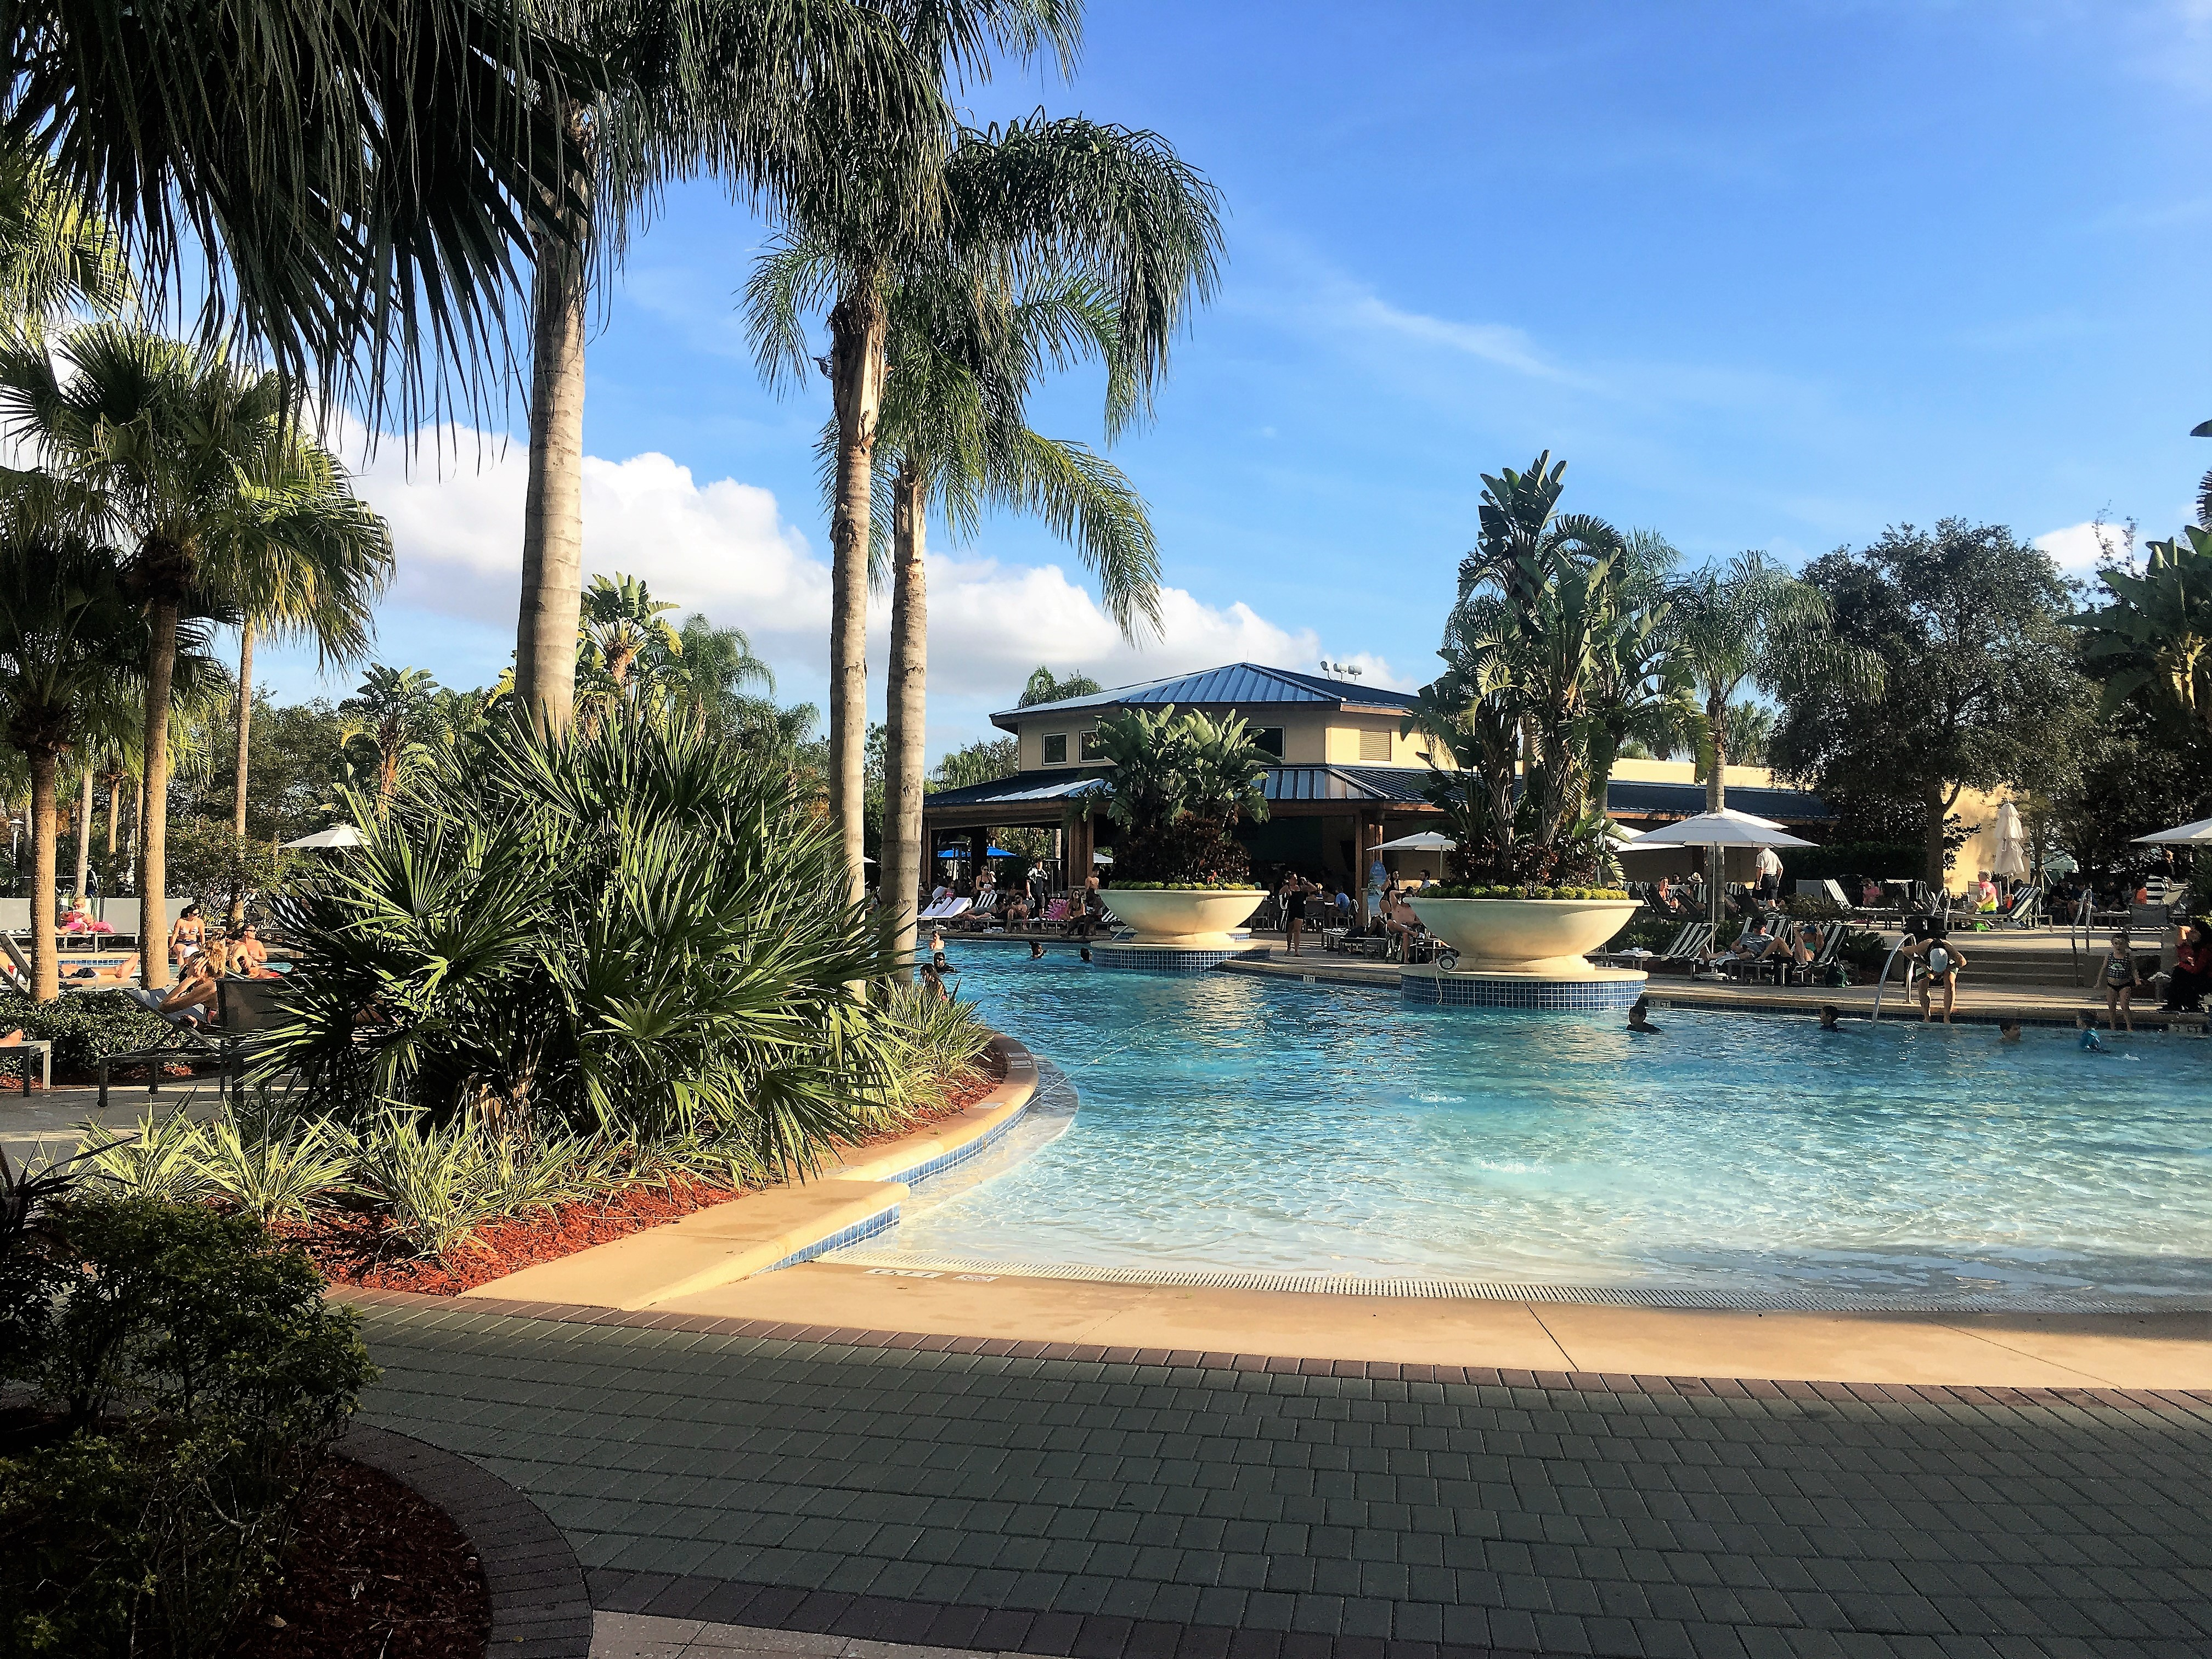 New Years Eve in Orlando 2019 – Part I